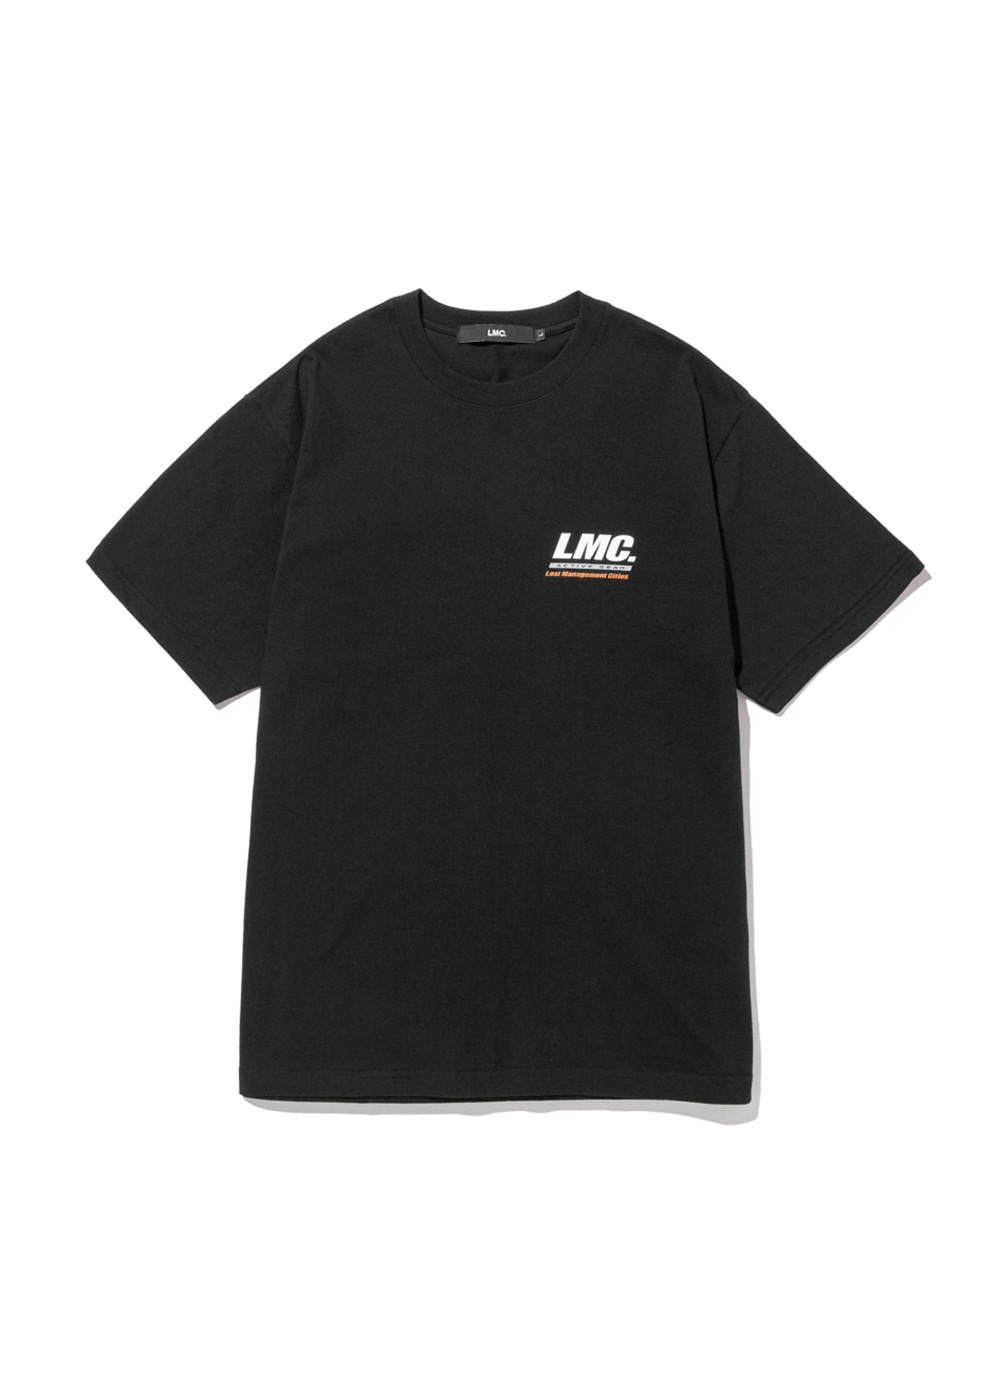 LMC ACTIVE GEAR TEE black